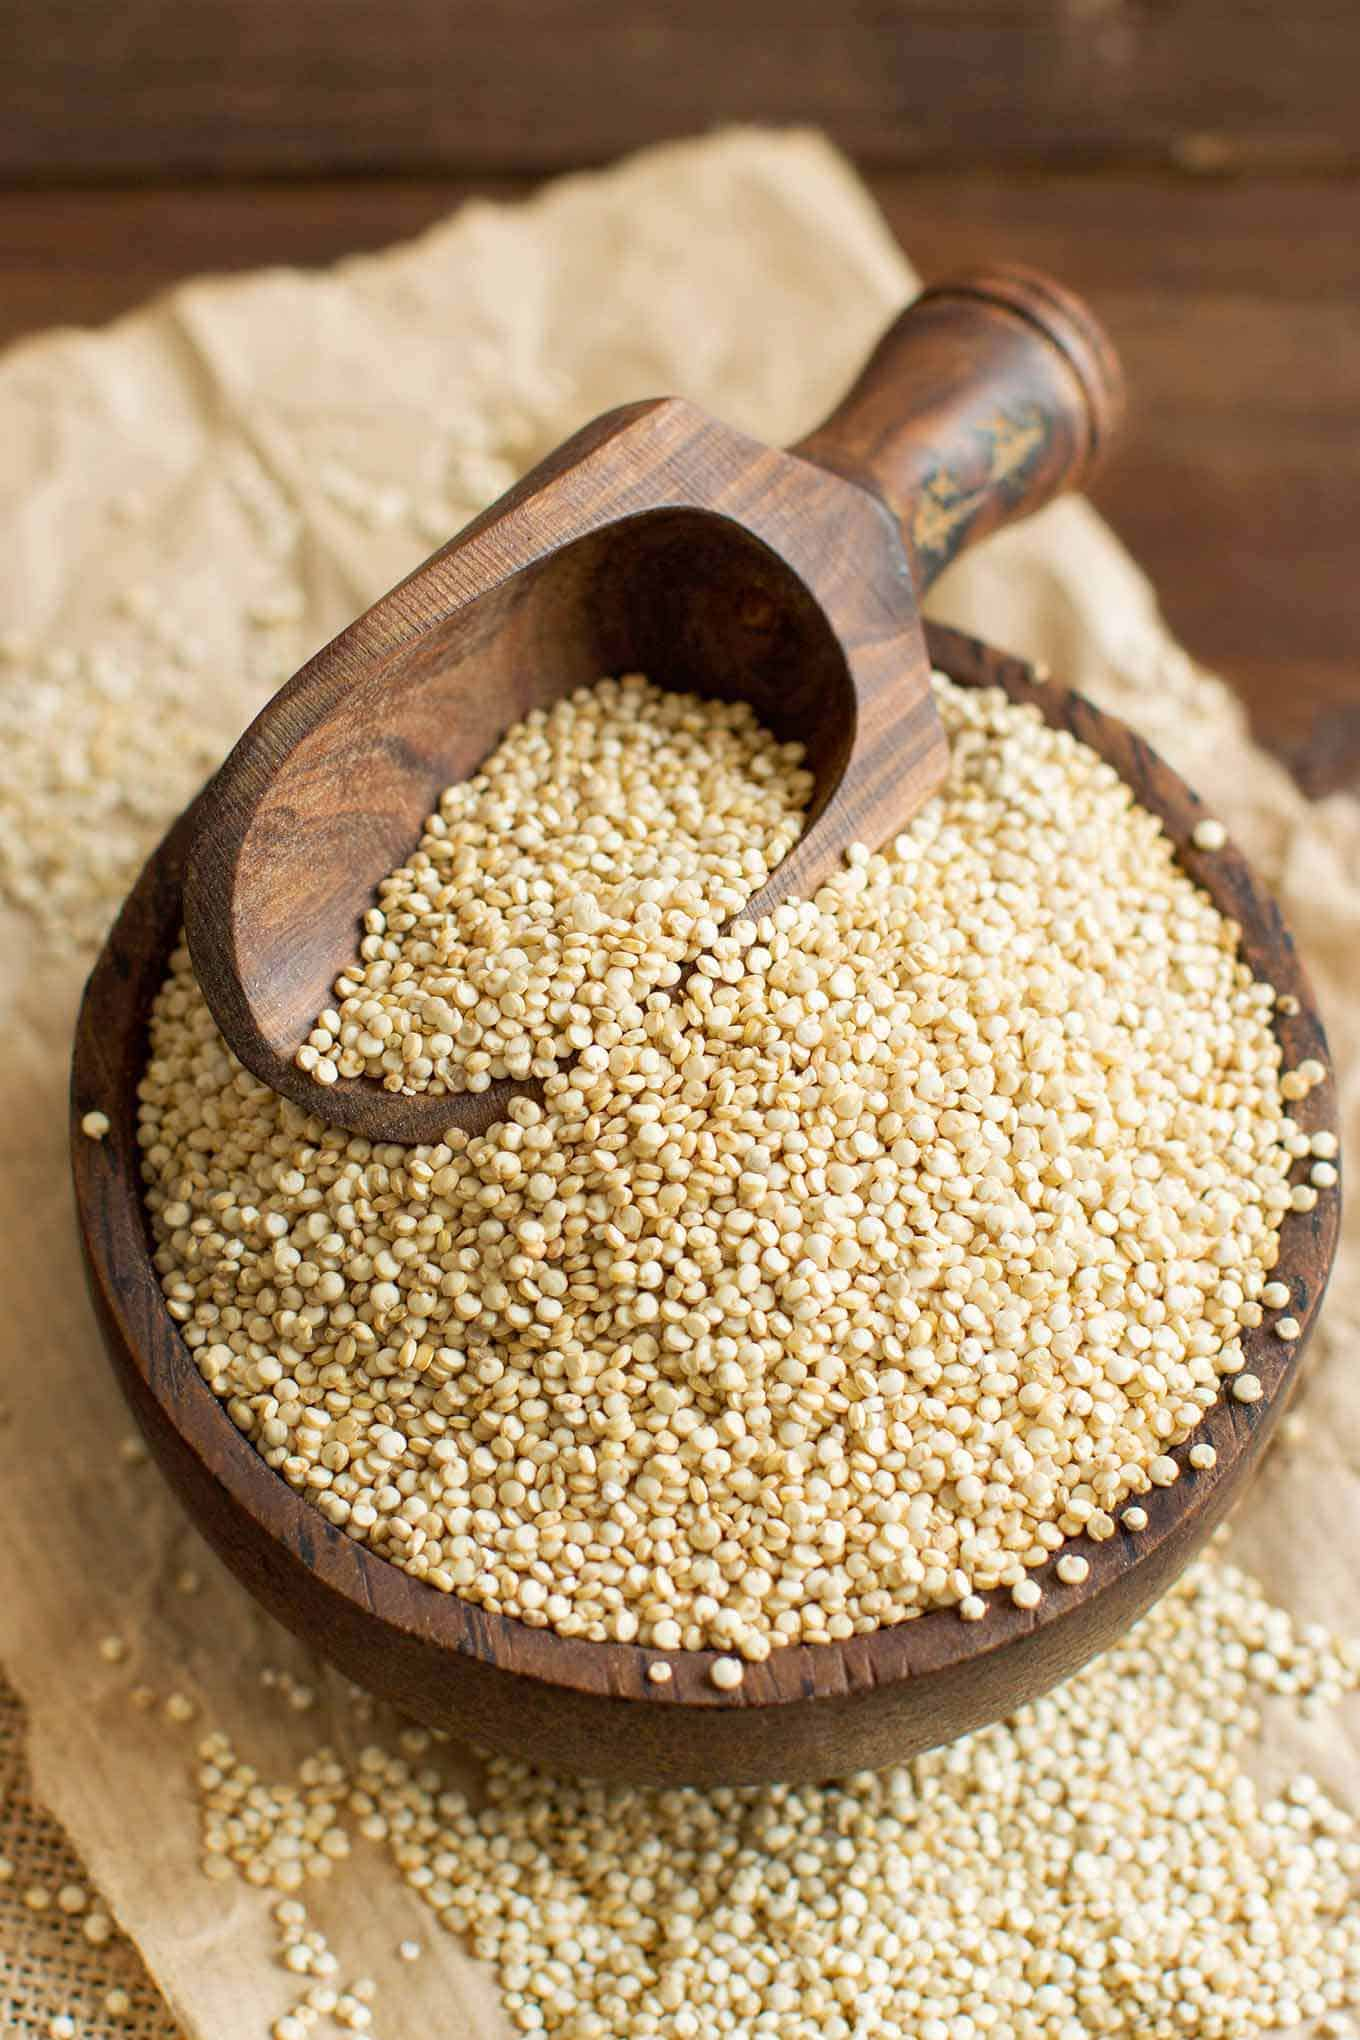 Raw quinoa in a wooden bowl with a measuring scoop.